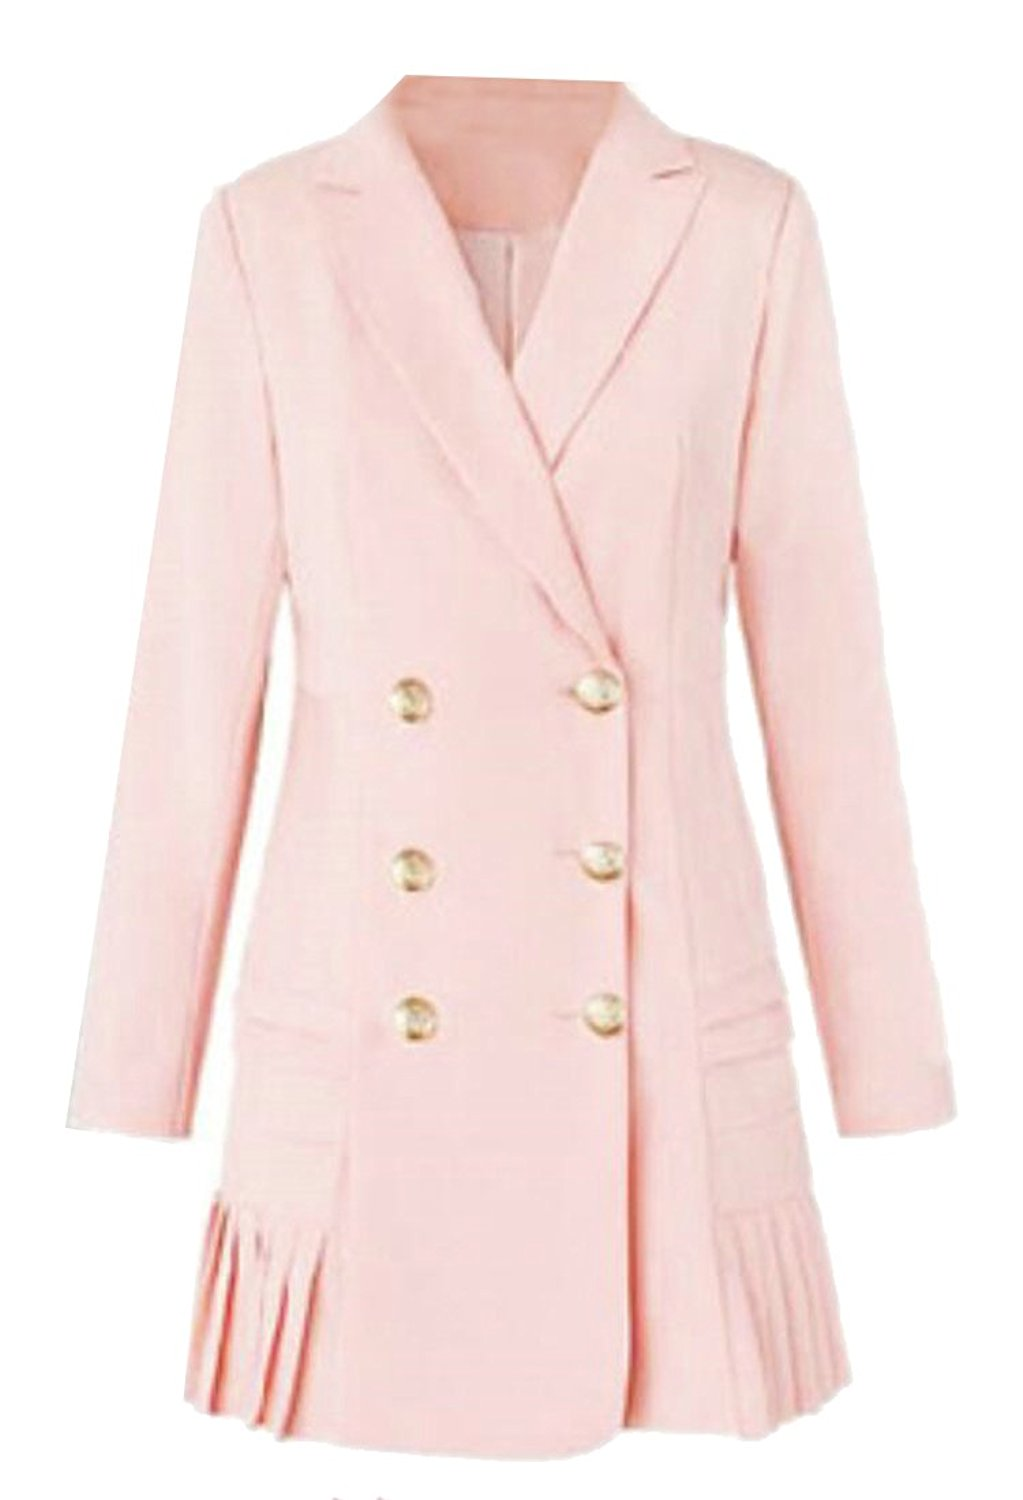 f89faf983a3f Get Quotations · NQ Womens Fashion Lapel Double-breasted Dress Suit Blazer  Jackets